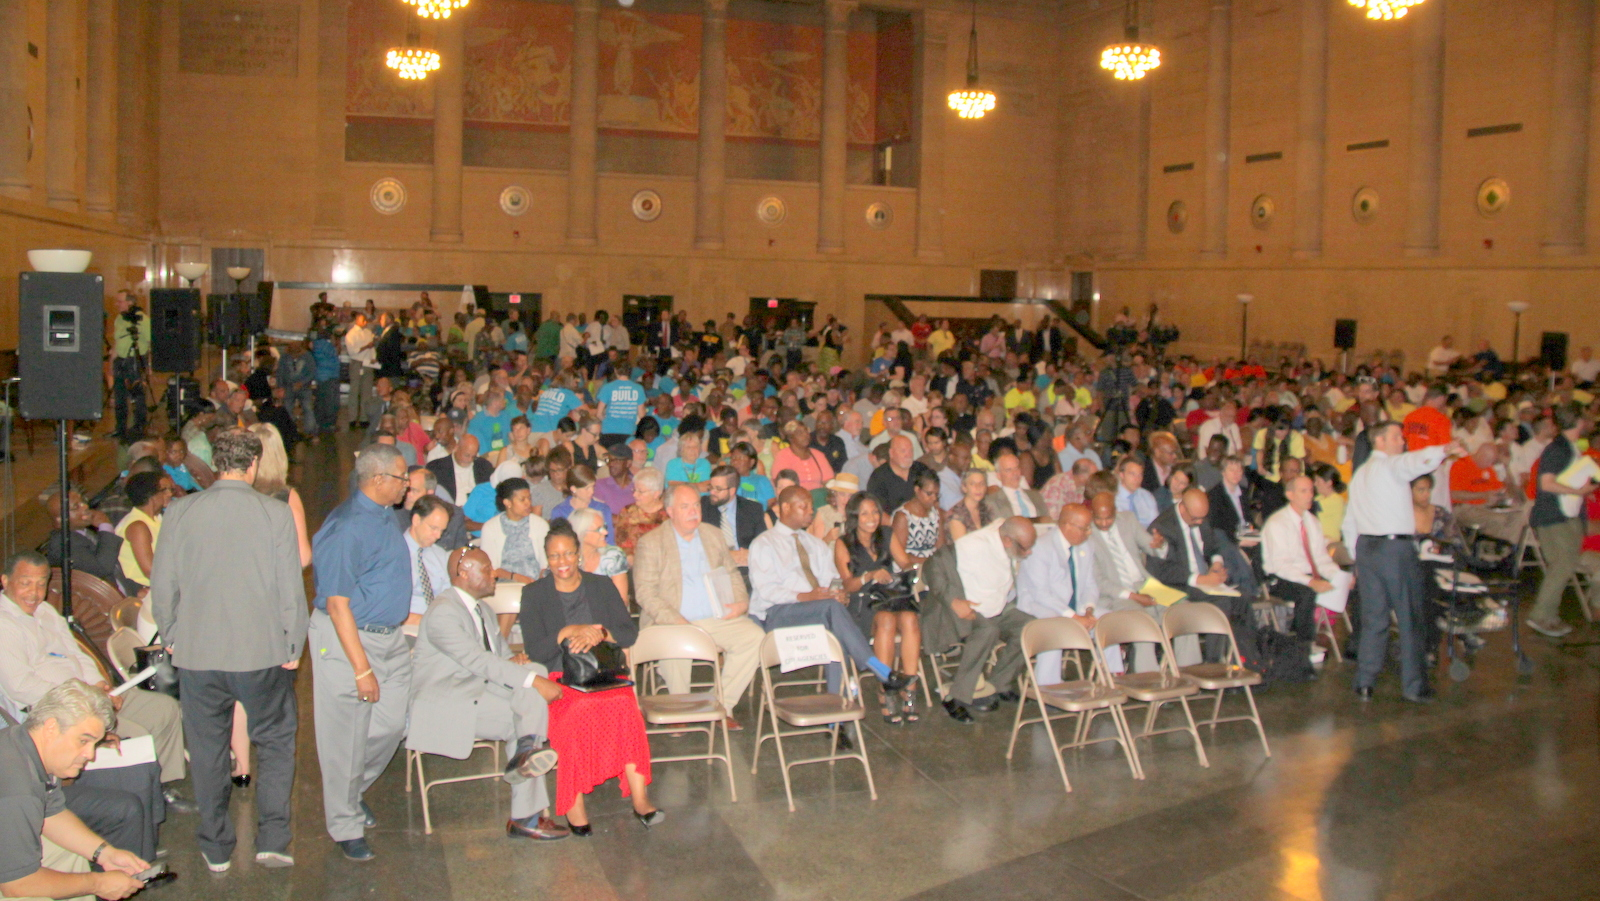 The War Memorial Building is filled to capacity at the start of public hearing on Port Covington. (Fern Shen)